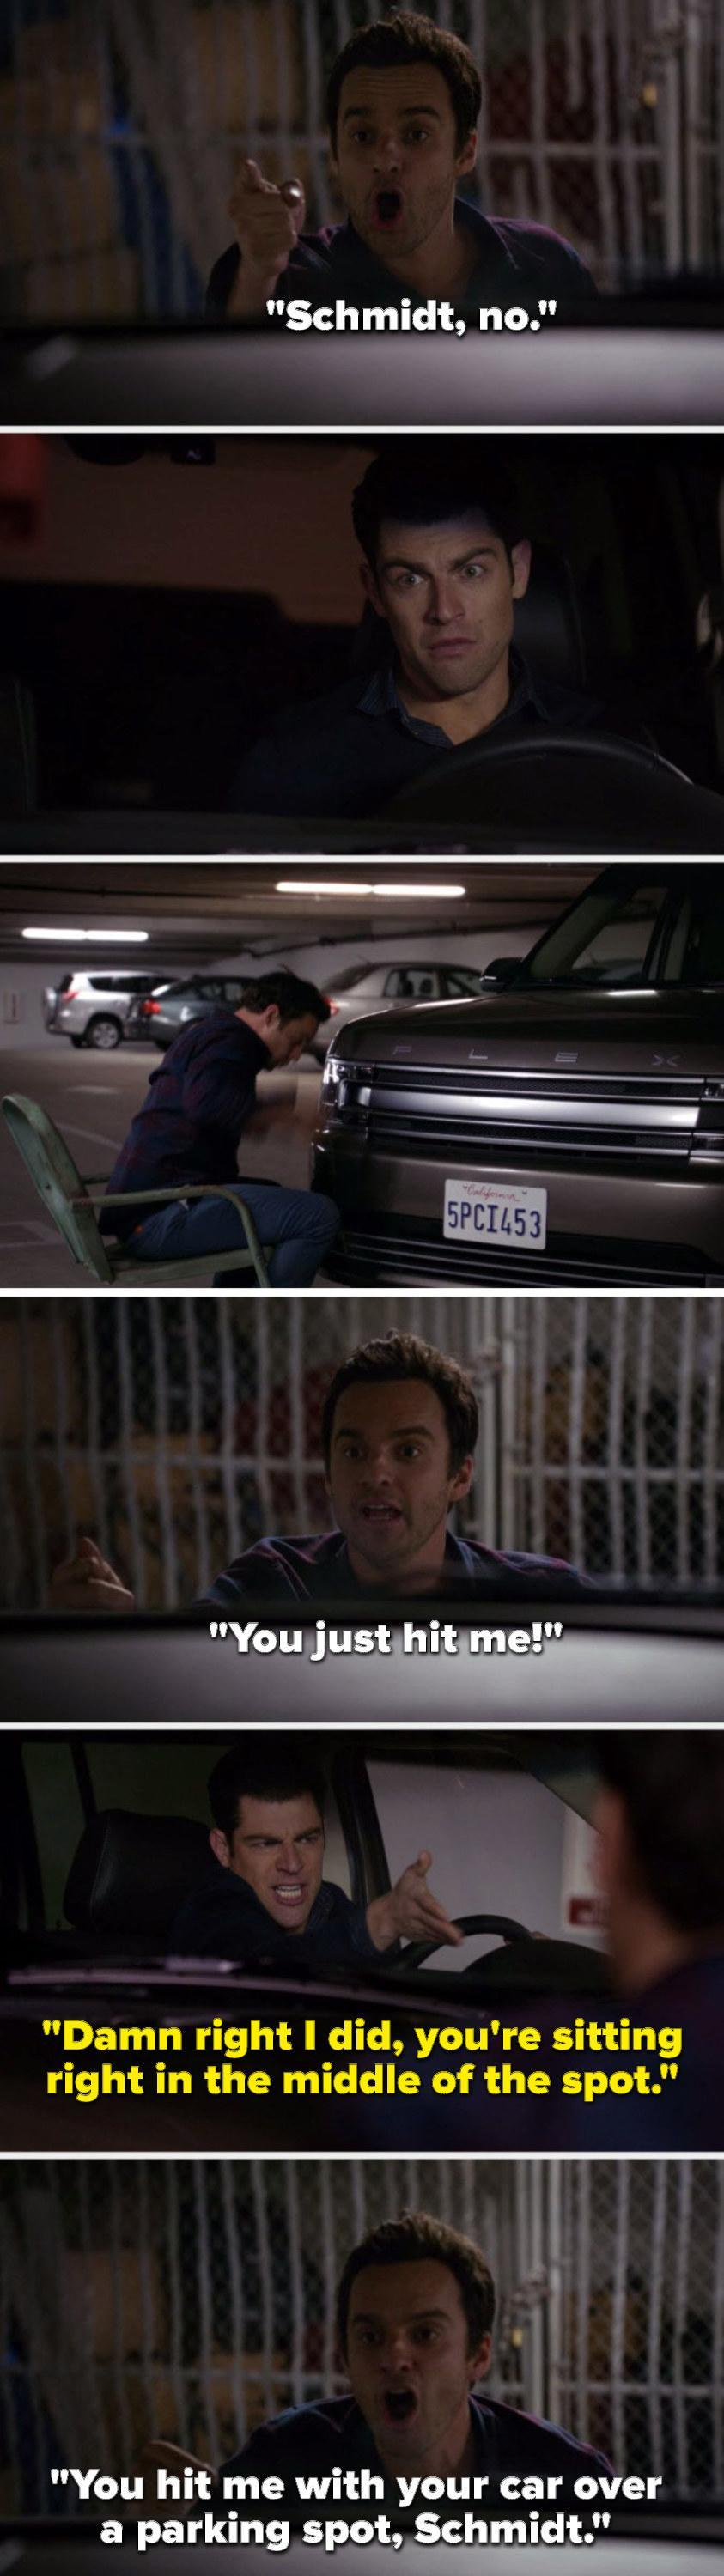 Nick says, Schmidt, no, Schmidt hits Nick and Nick says, You just hit me, Schmidt says, Damn right I did, you're sitting right in the middle of the spot, and Nick says, You hit me with your car over a parking spot, Schmidt